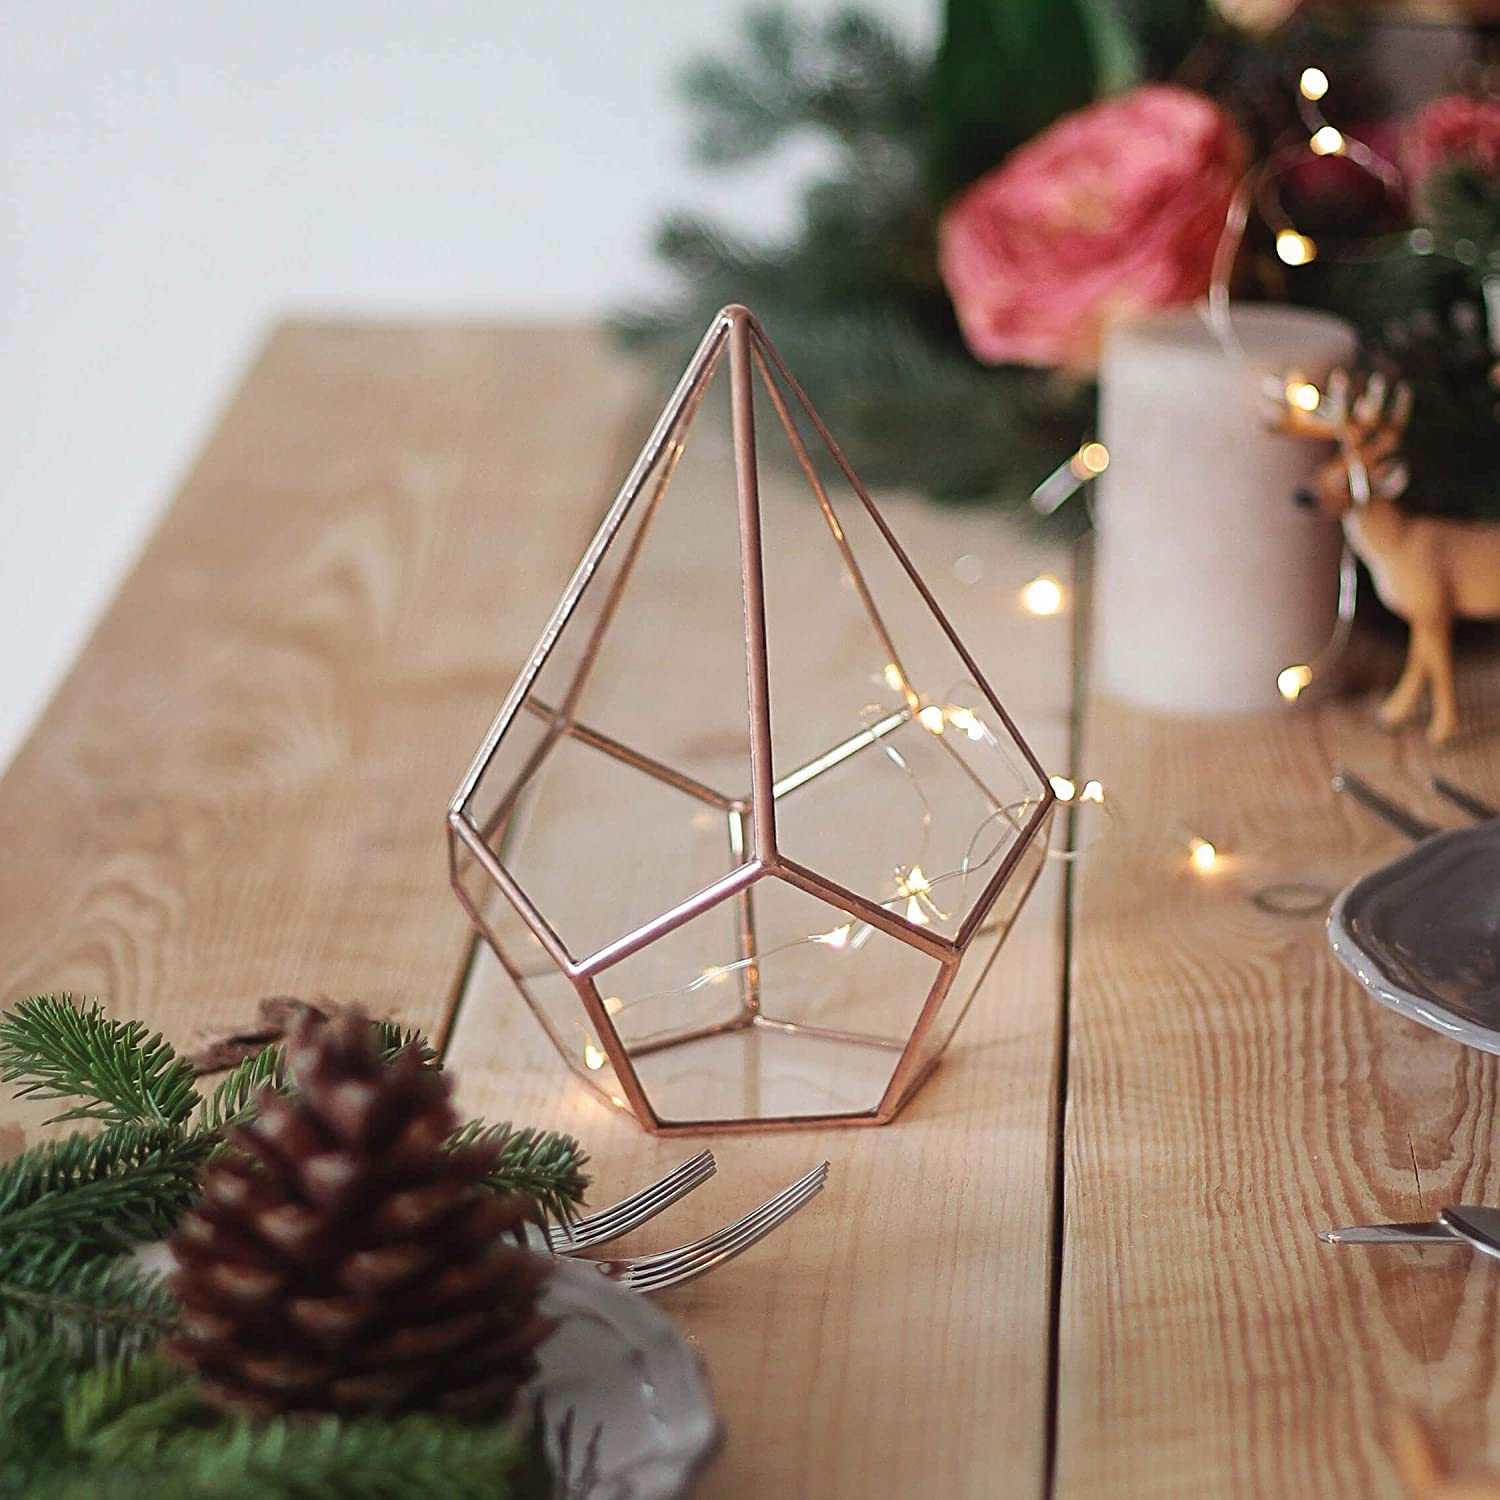 B015FY6JI2 Waen Holiday Table Centerpiece Collection Small Glass Geometric Centerpiece - Teardrop (Copper, Silver, Black) 81HrbptpyUL._SL1500_